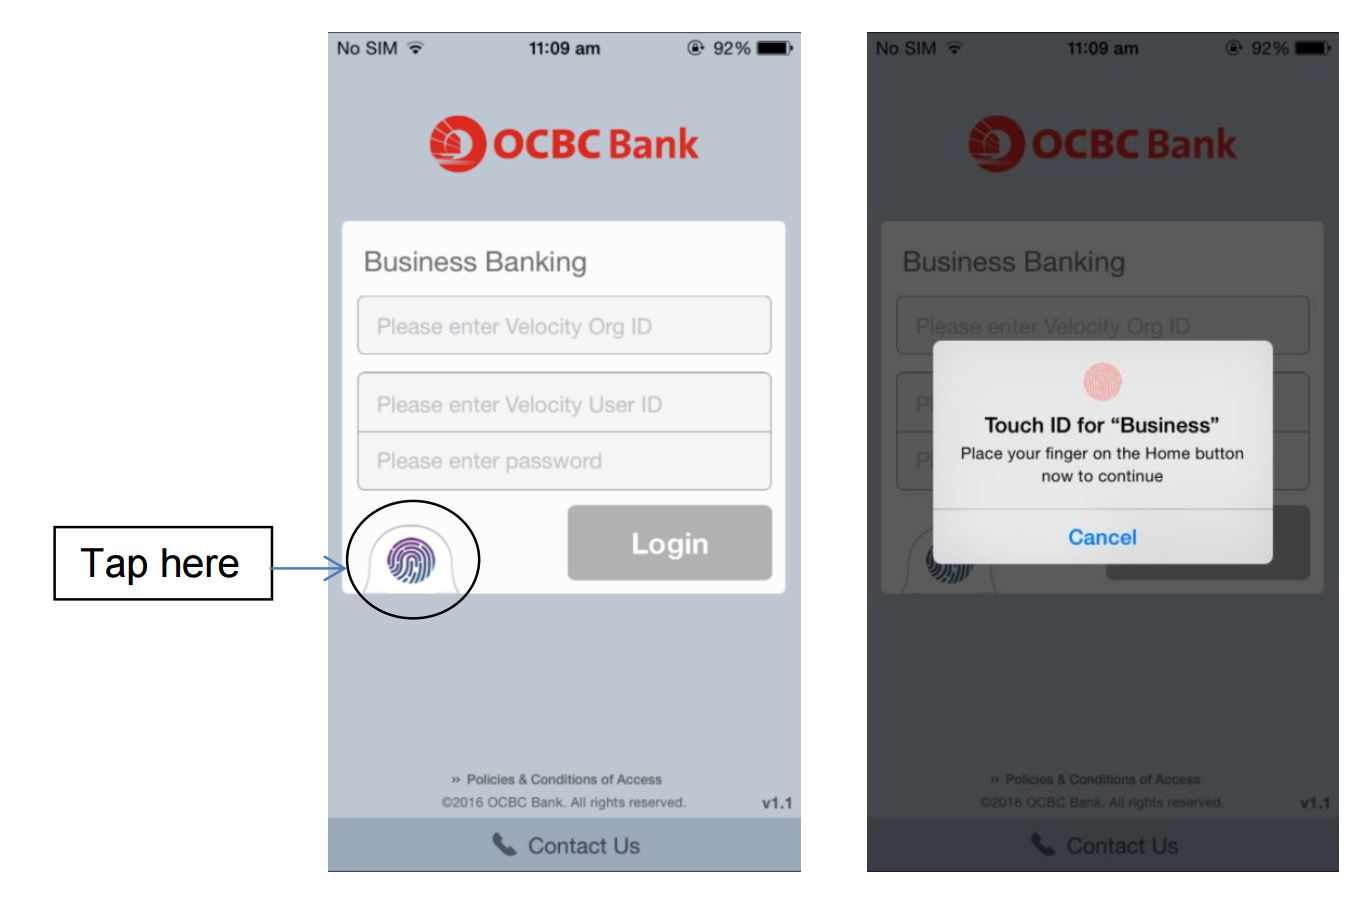 WorkSmart Asia: OCBC launches fingerprint-secured business banking ...